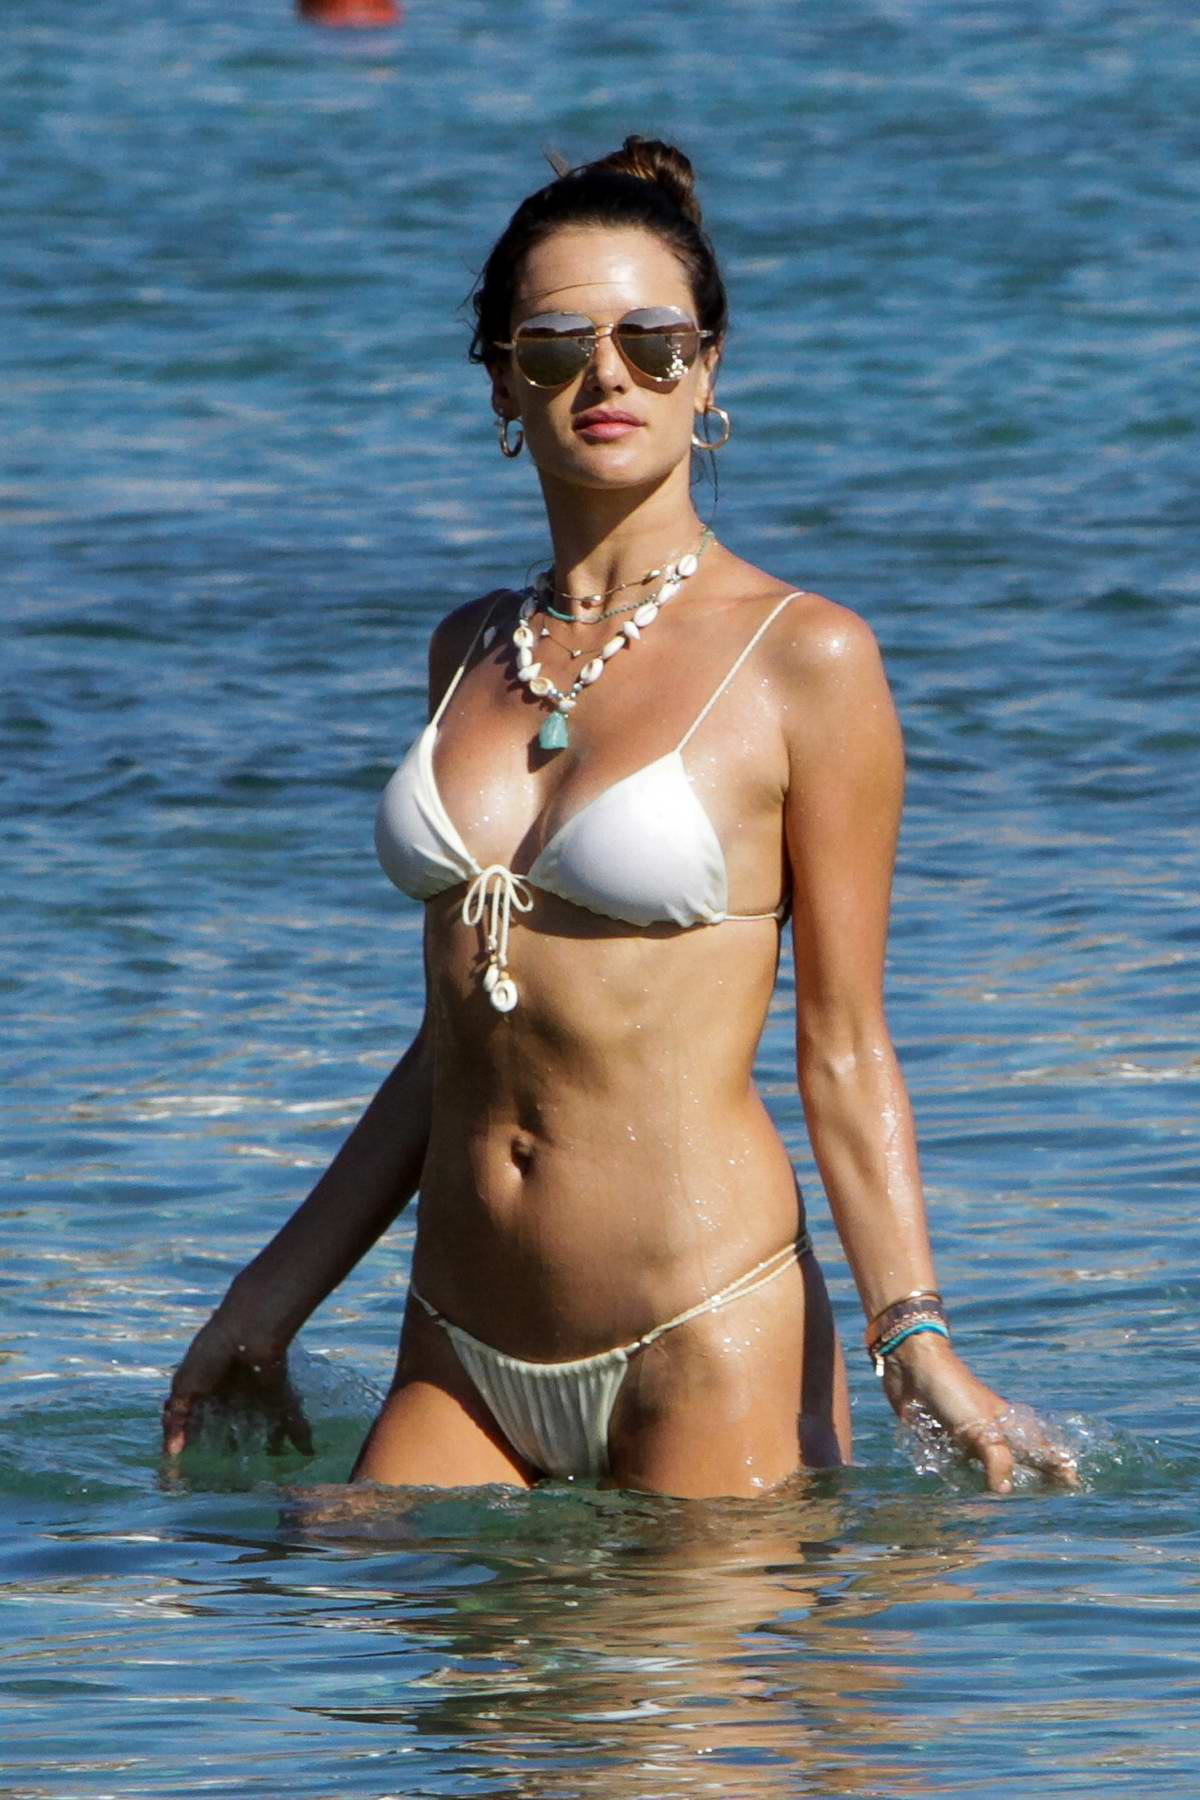 Alessandra Ambrosio looks amazing in a white bikini while enjoying the sun and the beach in Mykonos, Greece